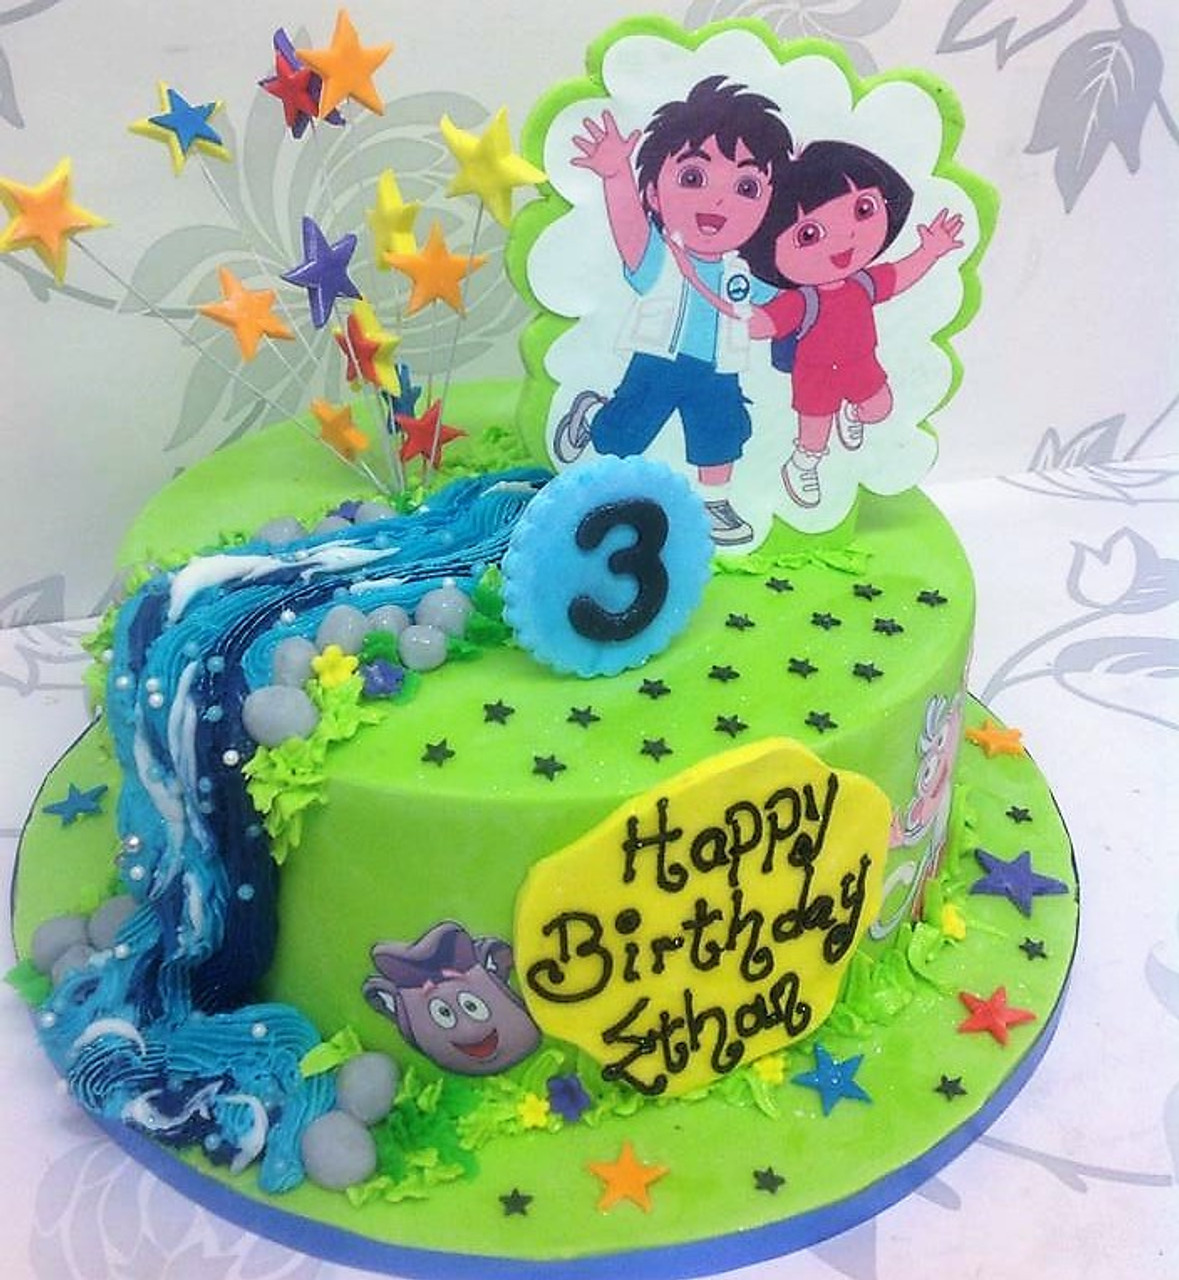 Dora the Explorer Cake Aberdeen